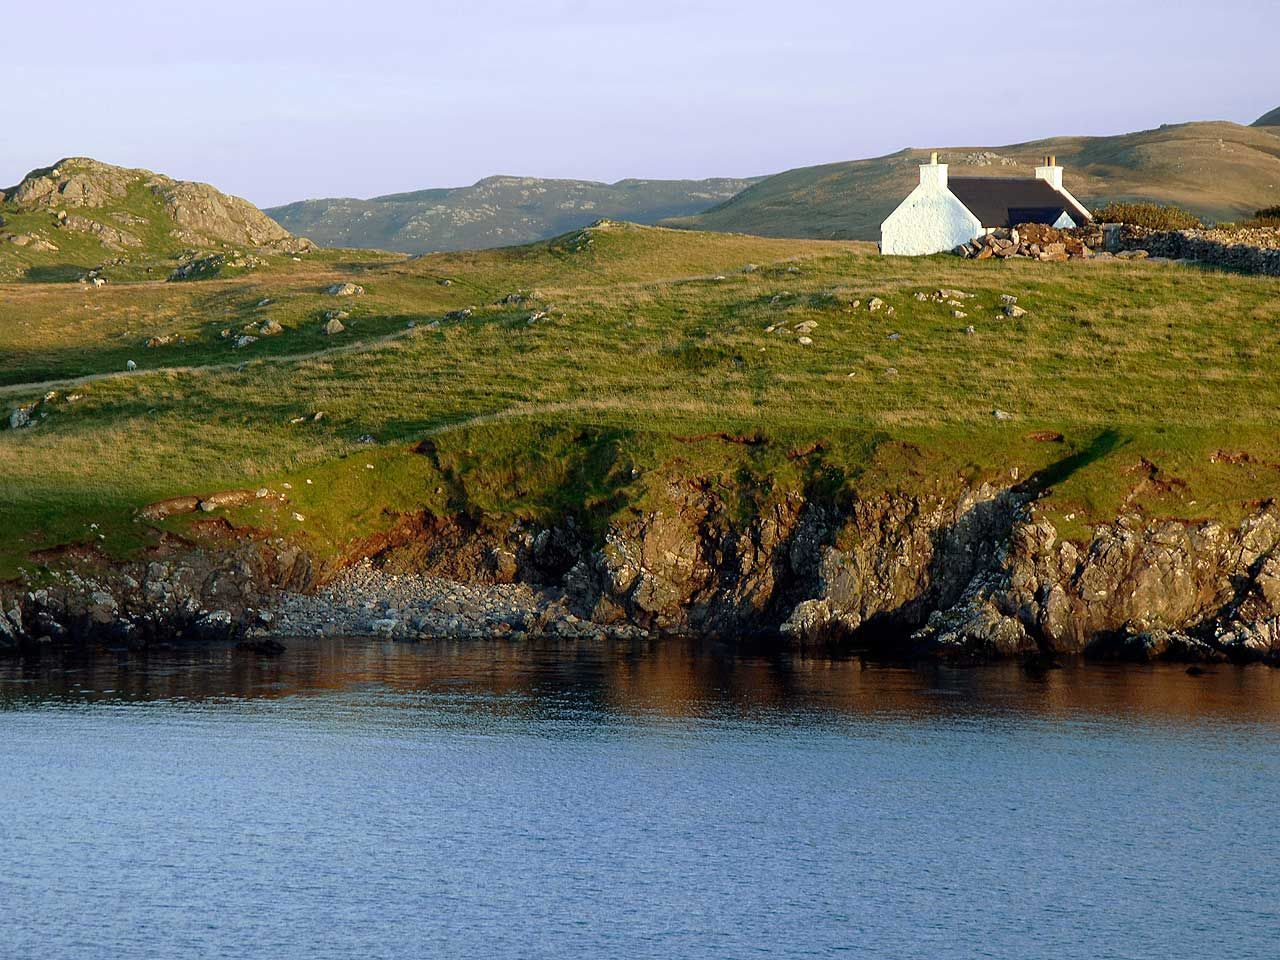 The Shetland Islands in Scotland - loved it (2011) #shetlandislands The Shetland Islands in Scotland - loved it (2011) #shetlandislands The Shetland Islands in Scotland - loved it (2011) #shetlandislands The Shetland Islands in Scotland - loved it (2011) #shetlandislands